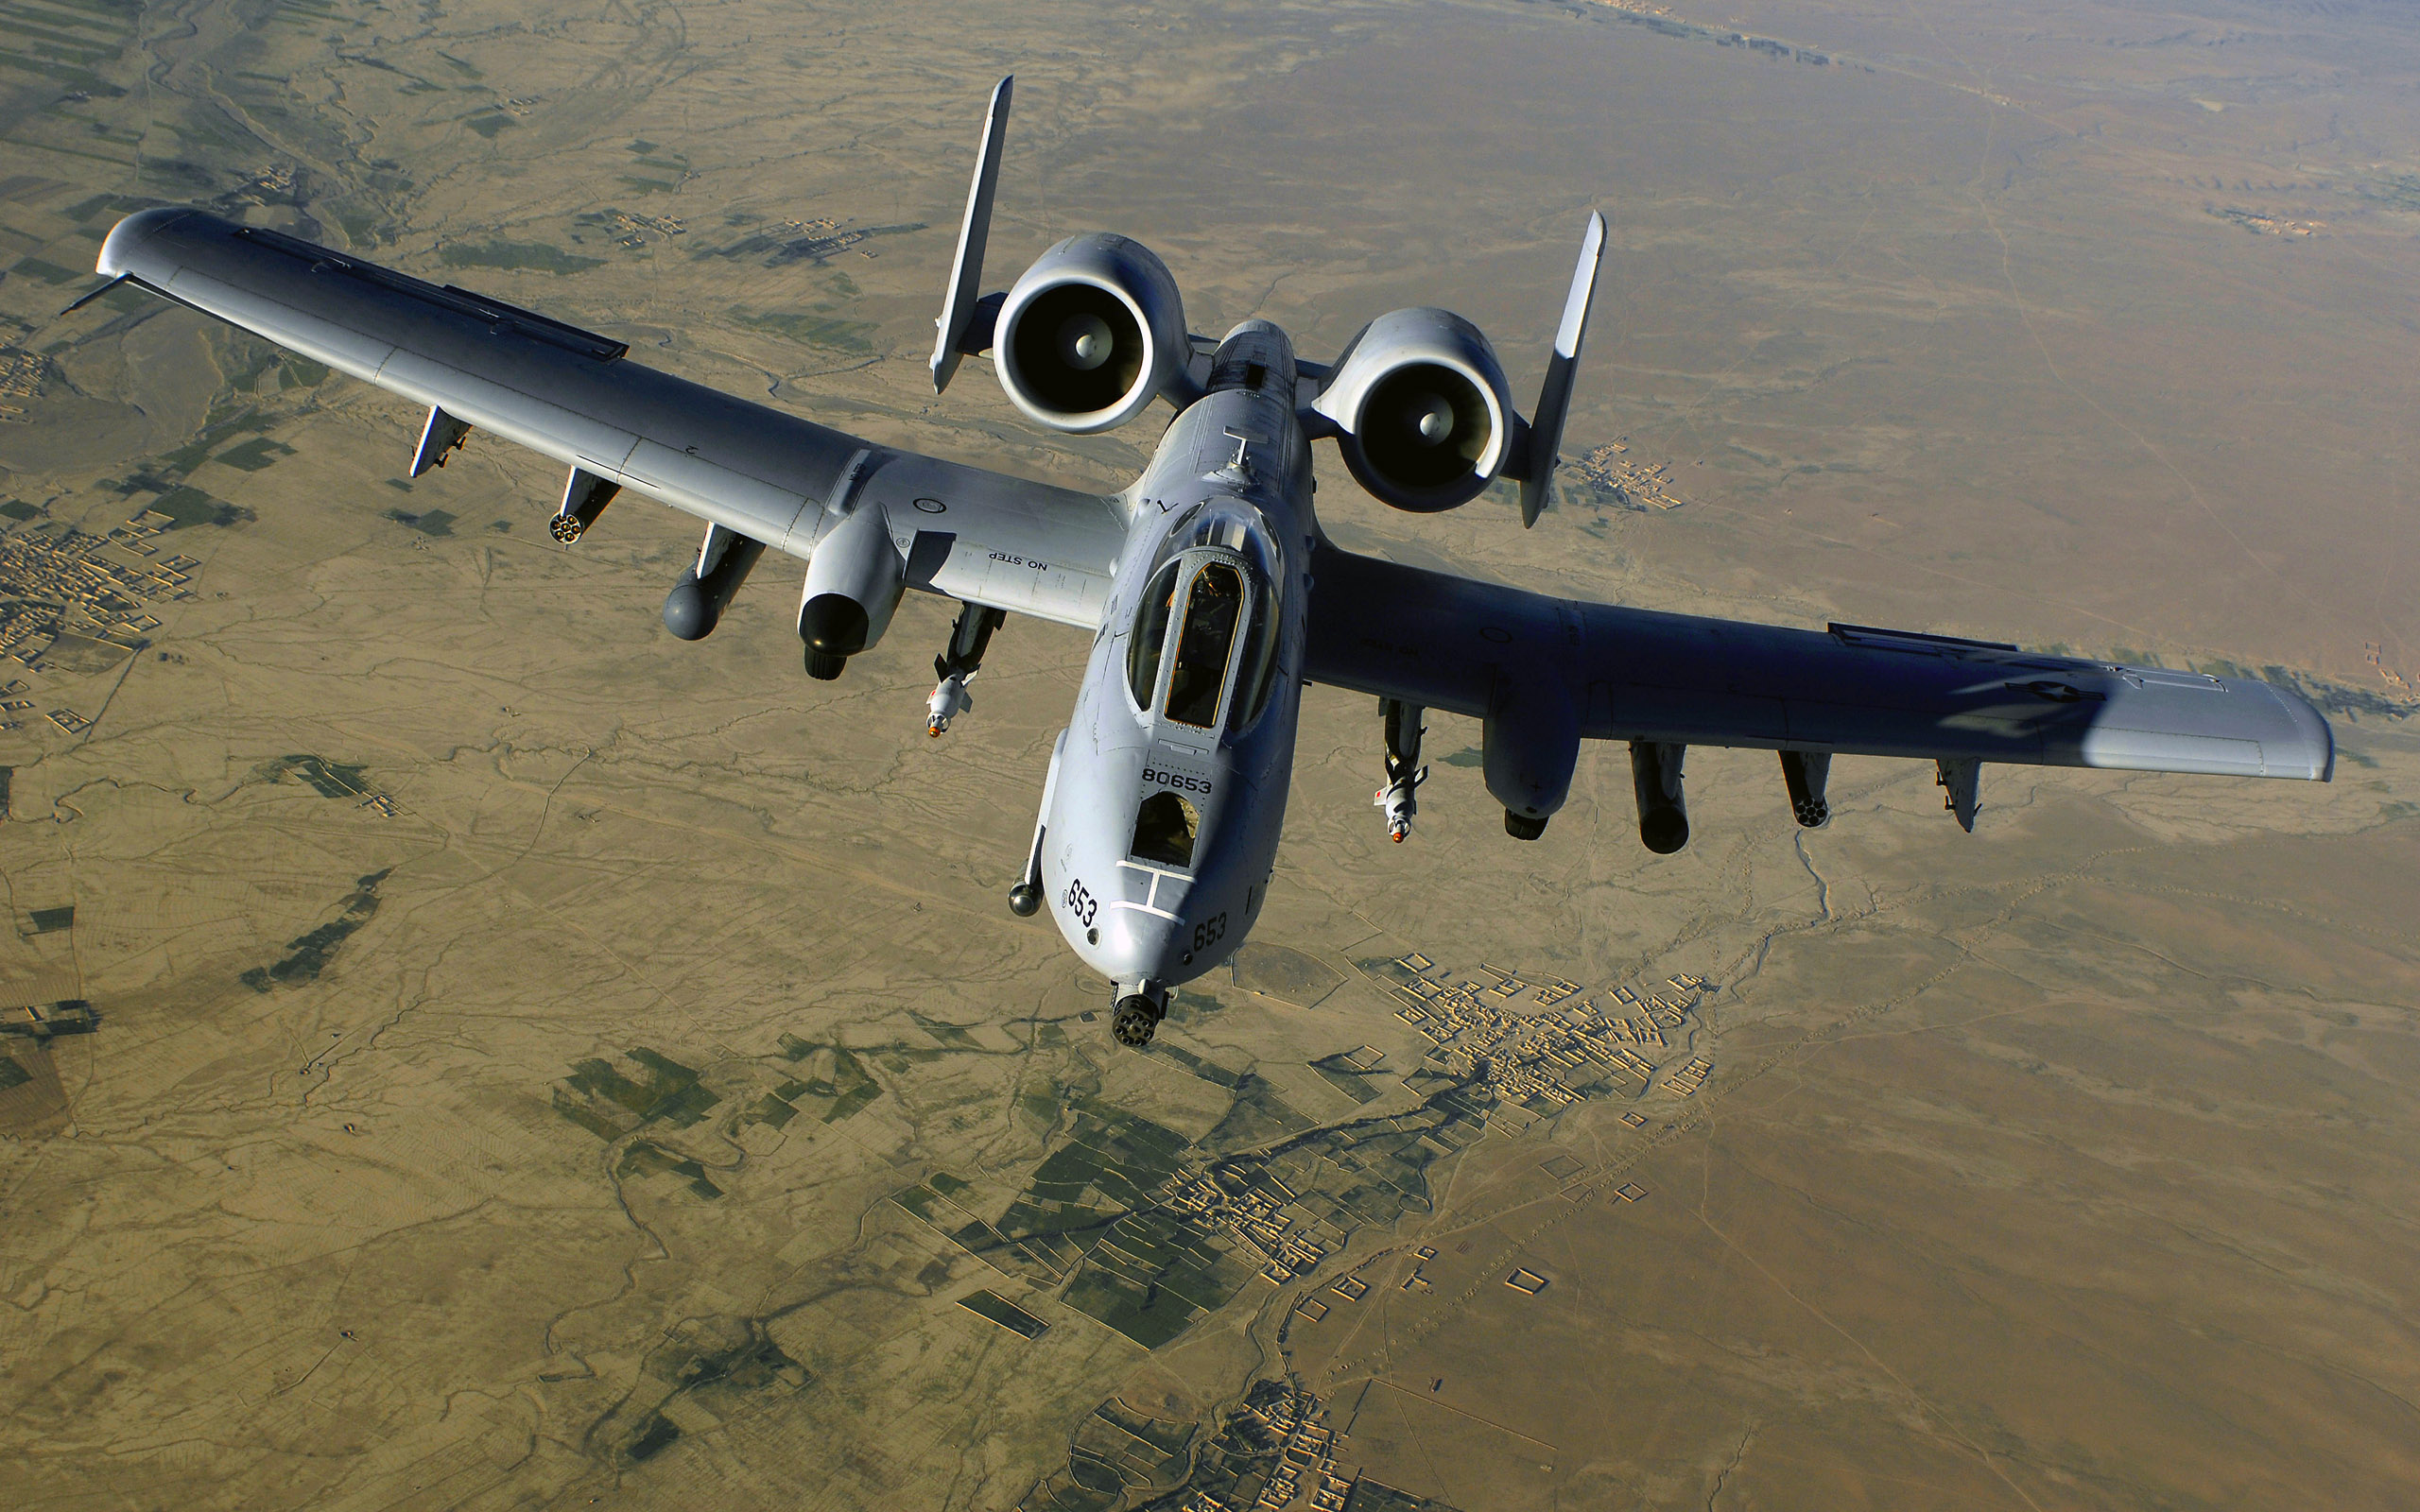 A 10 Thunderbolt II Air Support